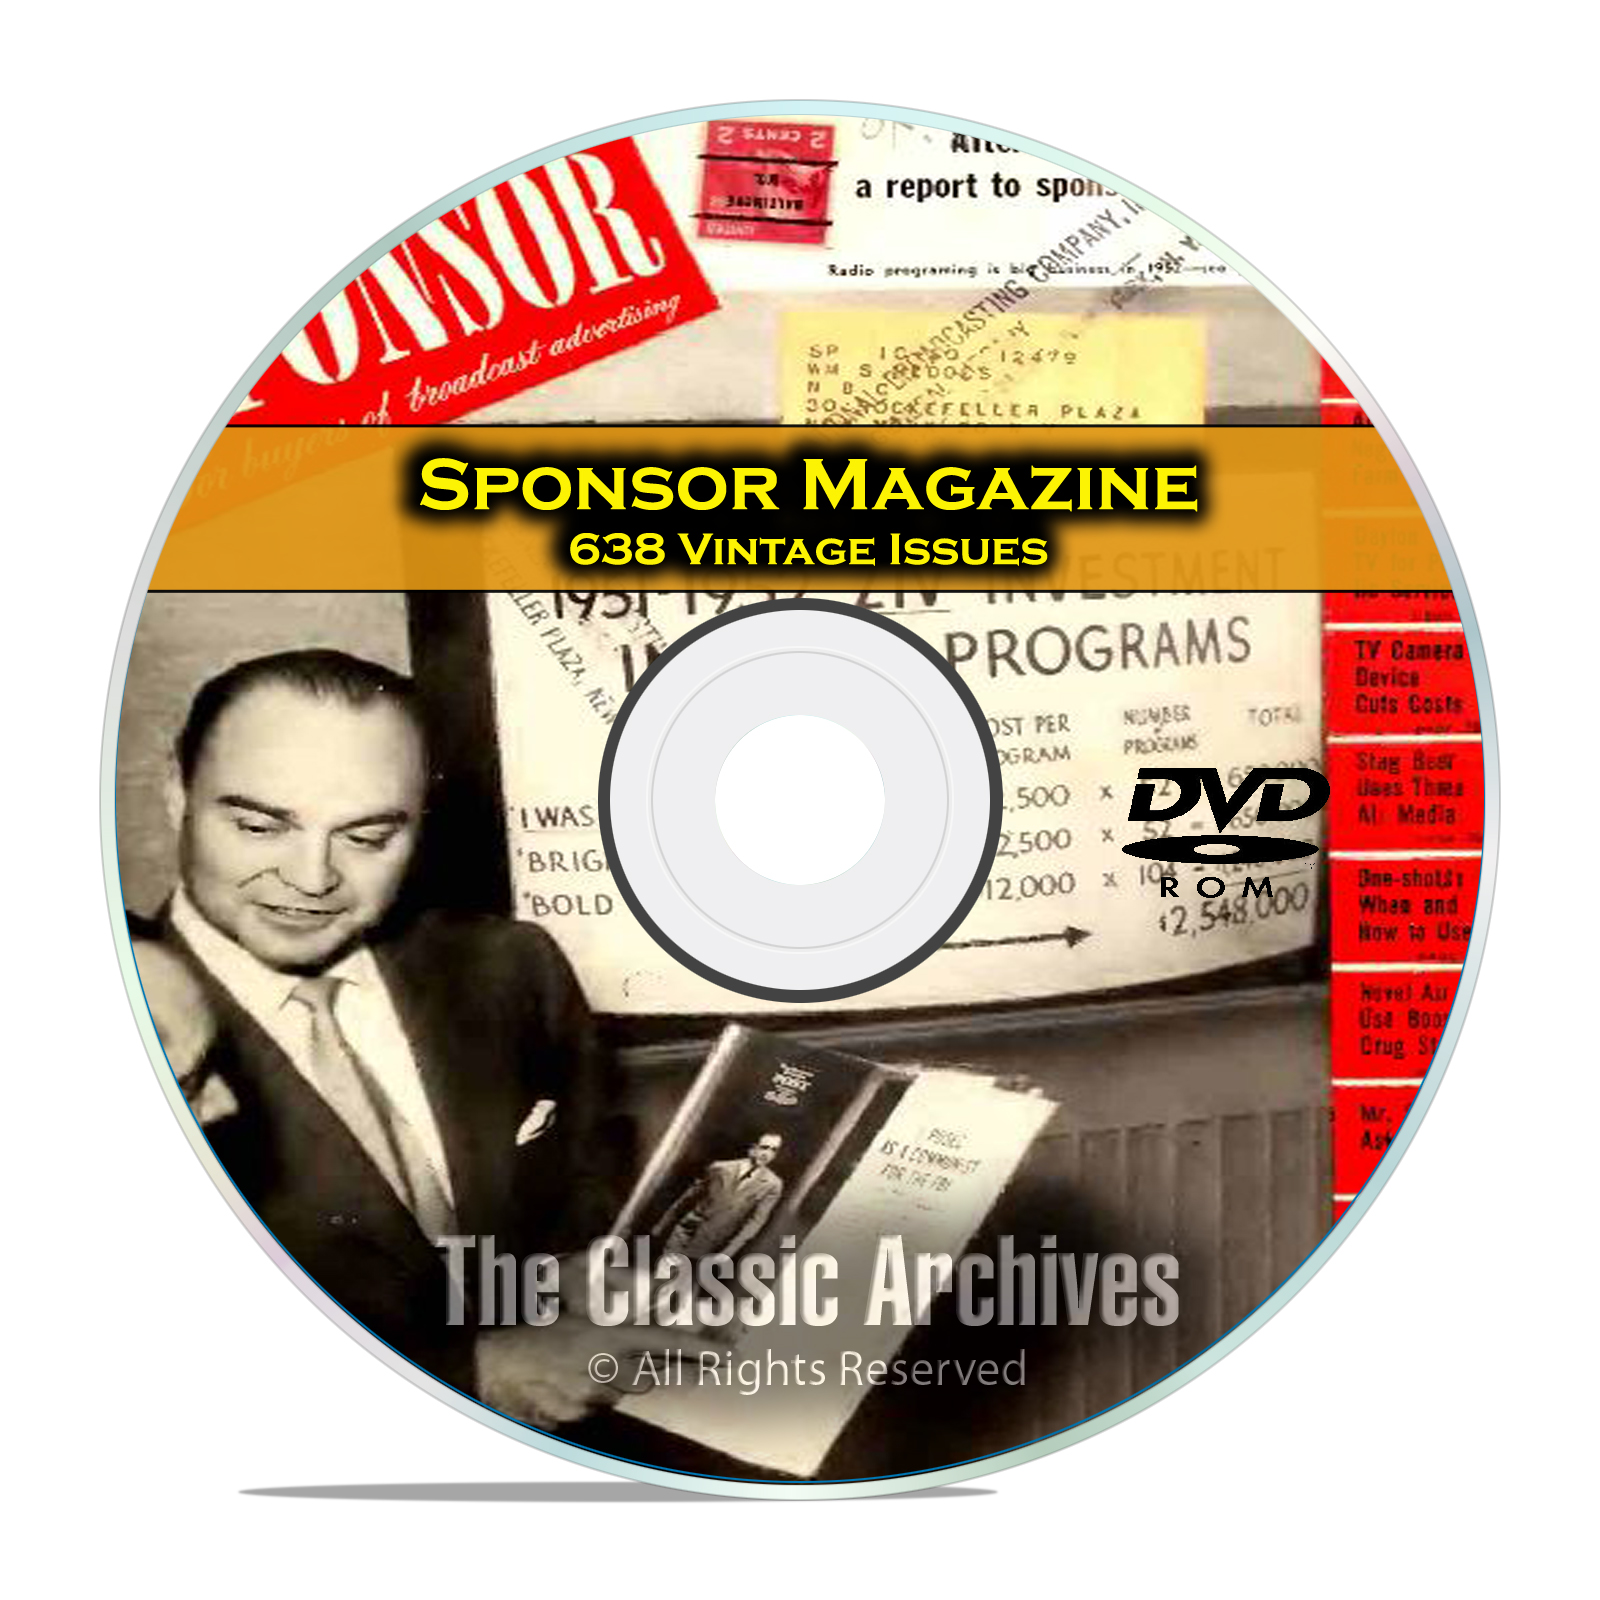 Sponsor Magazine, 638 Vintage Issues, Radio and Television Advertising, DVD